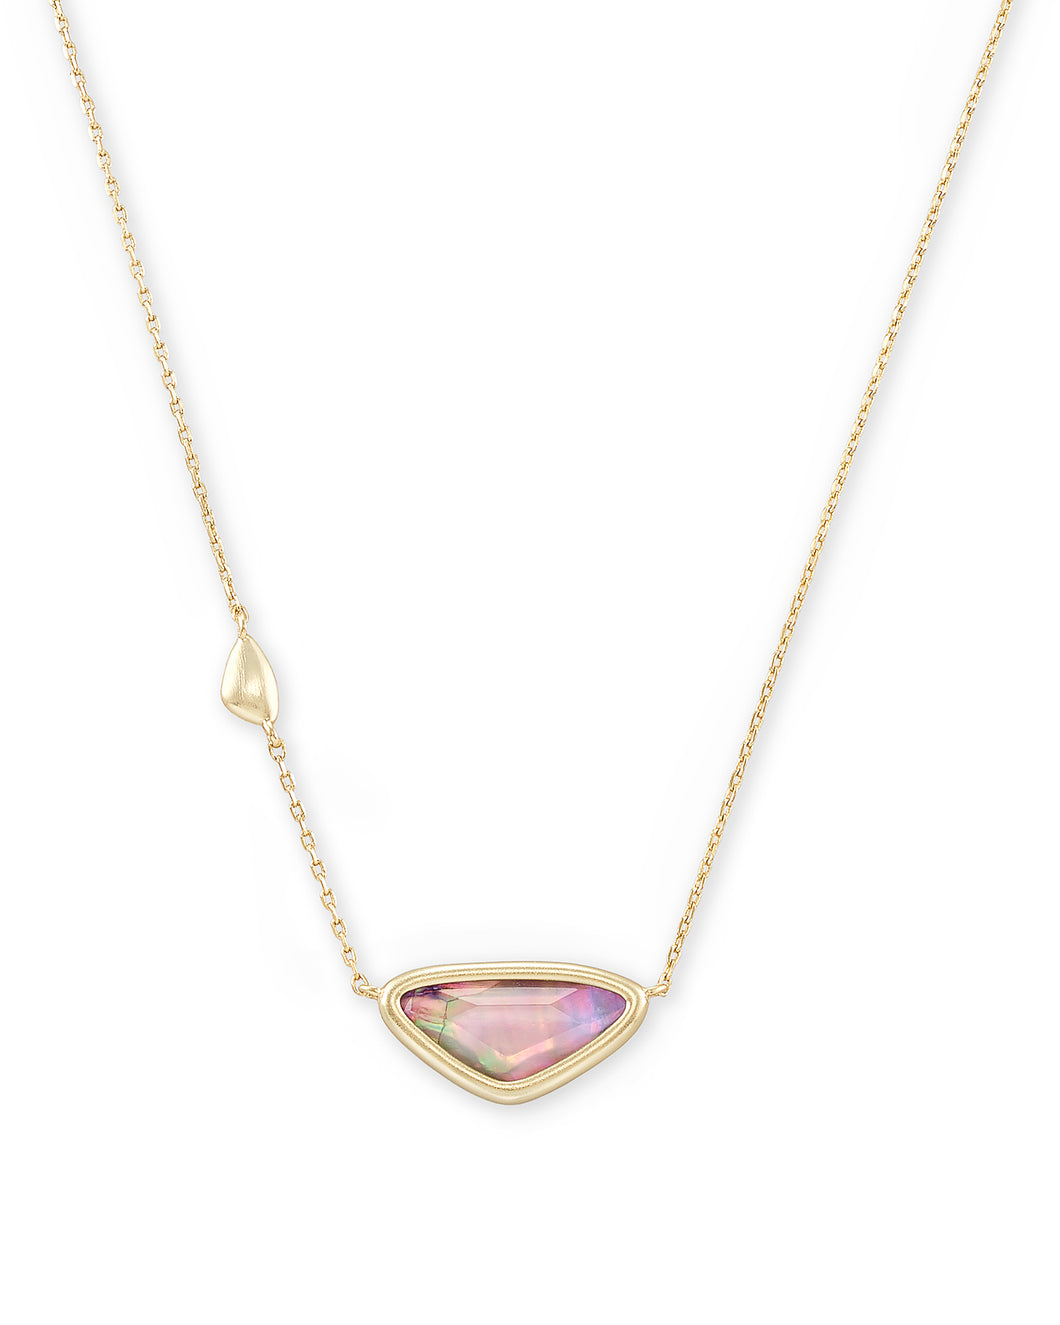 Margot Gold Pendant Necklace In Lilac Abalone